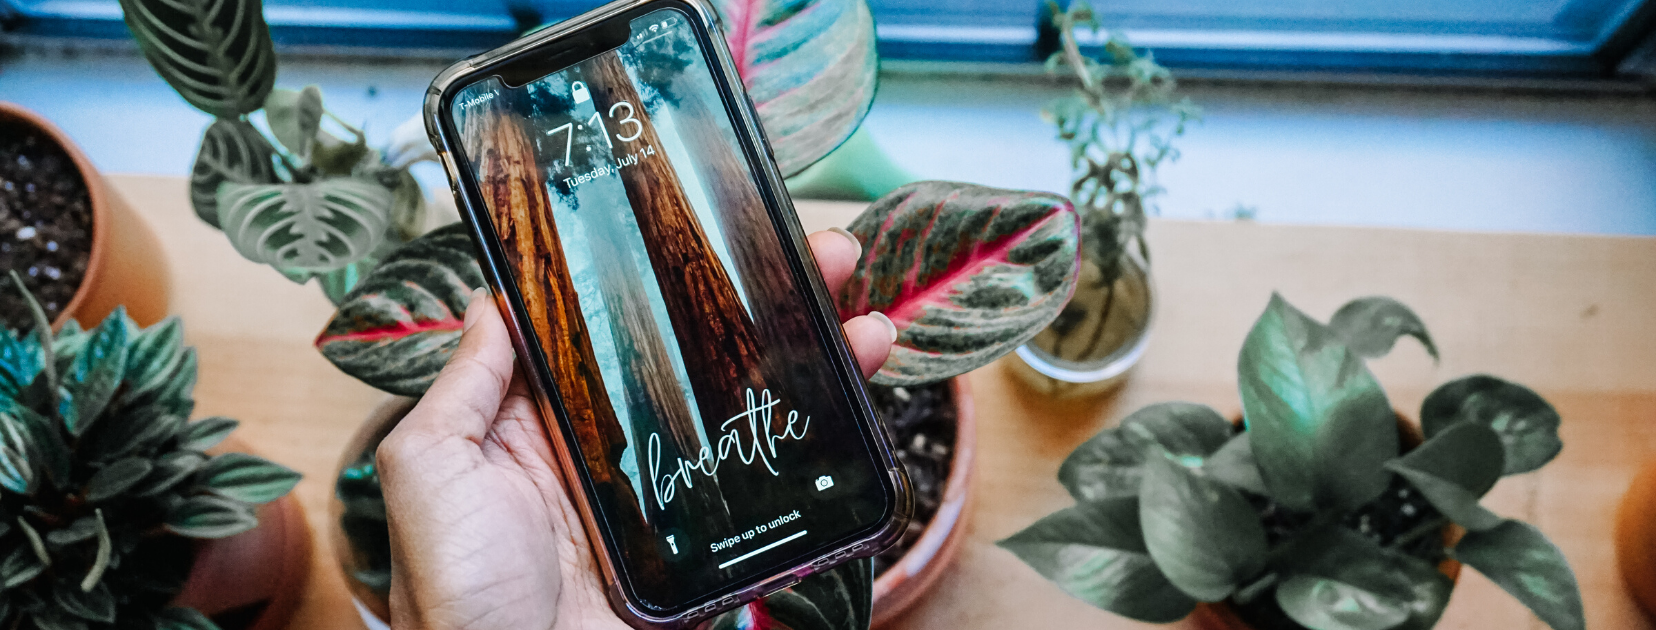 iphone screen savers inspired by nature